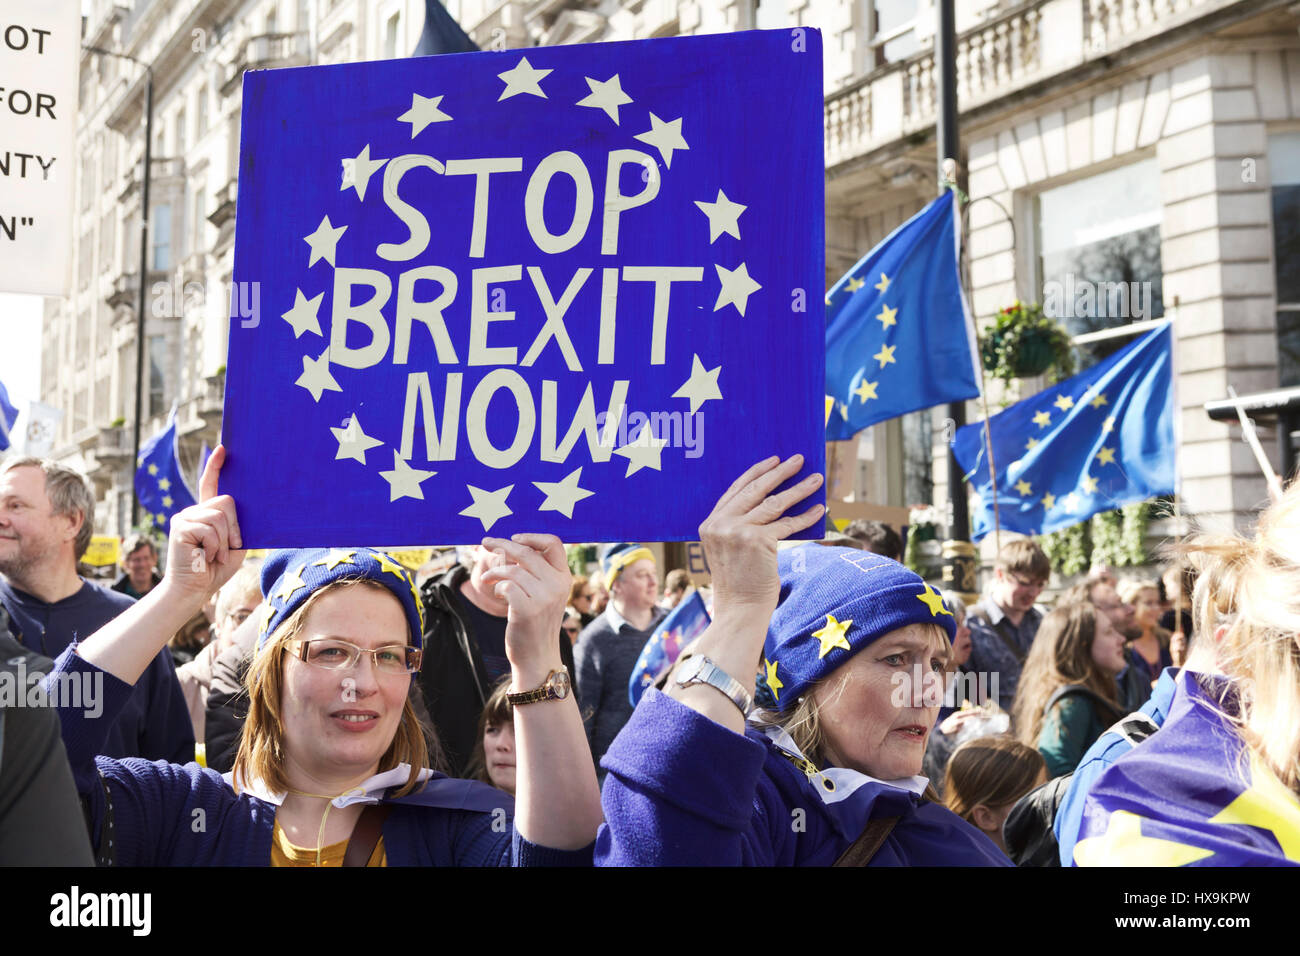 London, UK. 25th March 2017. Unite for Europe organised a Pro-EU march in London. Anti-BREXIT demonstrators march Stock Photo